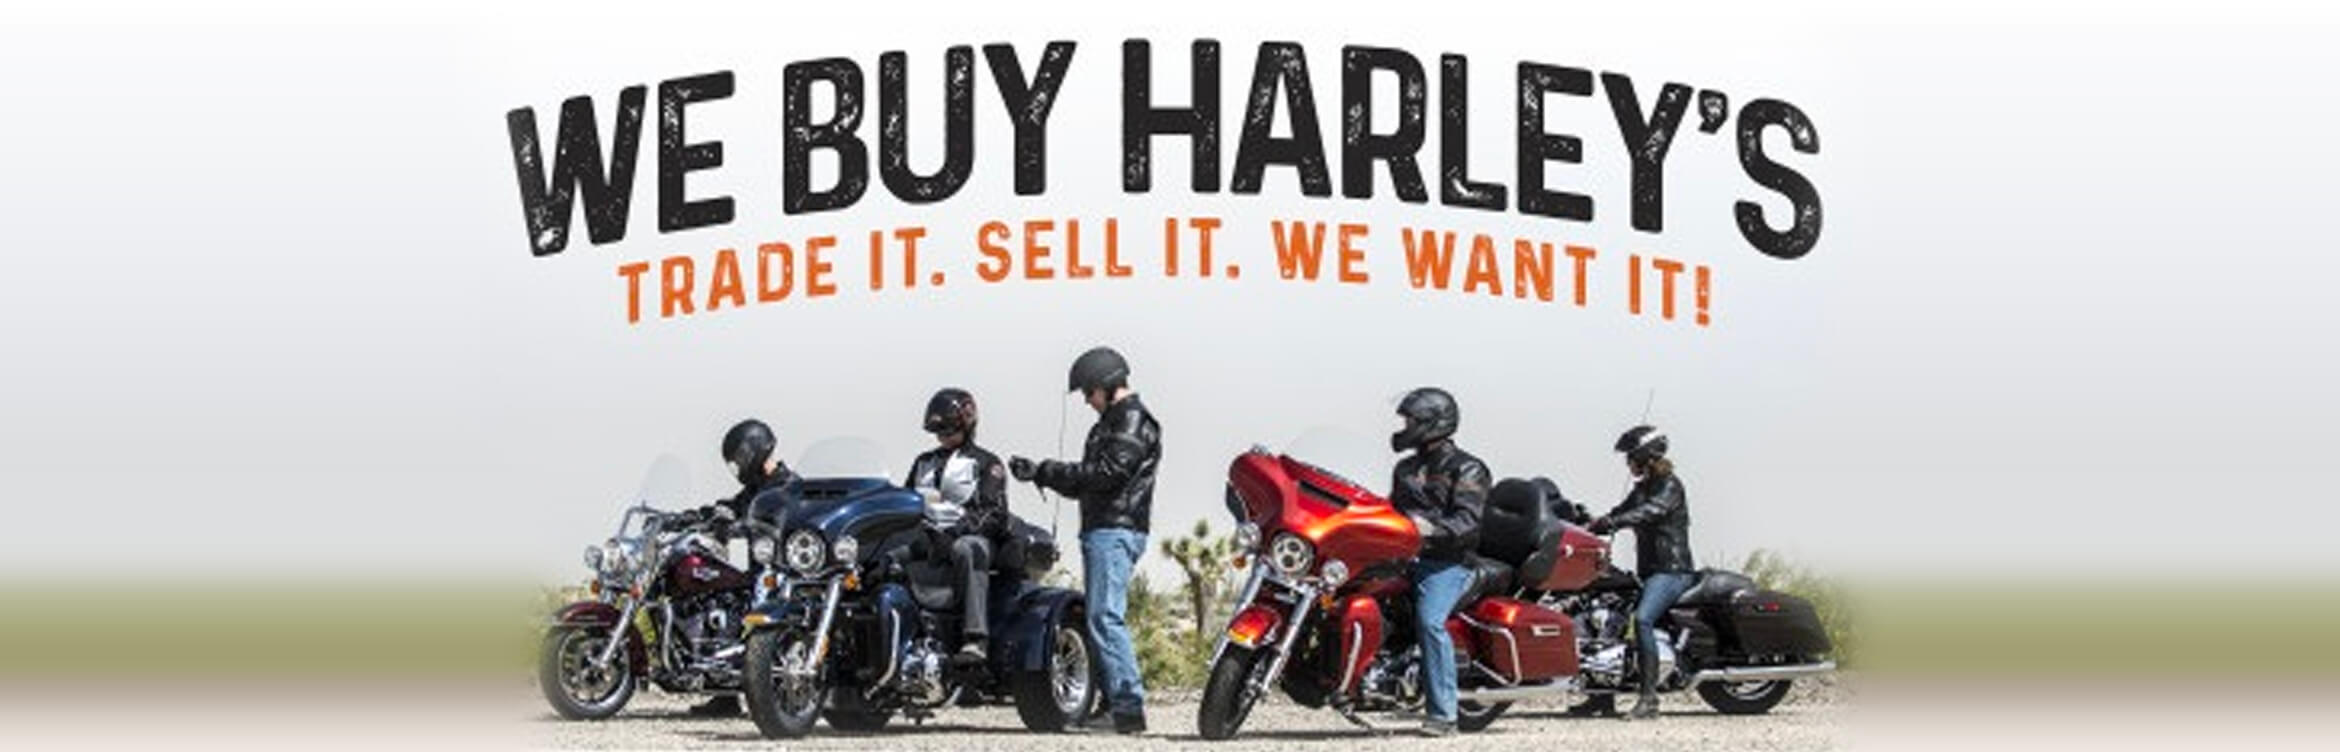 Hogtown Cycles buys Harley-Davidson motorcycles and accepts them on trade